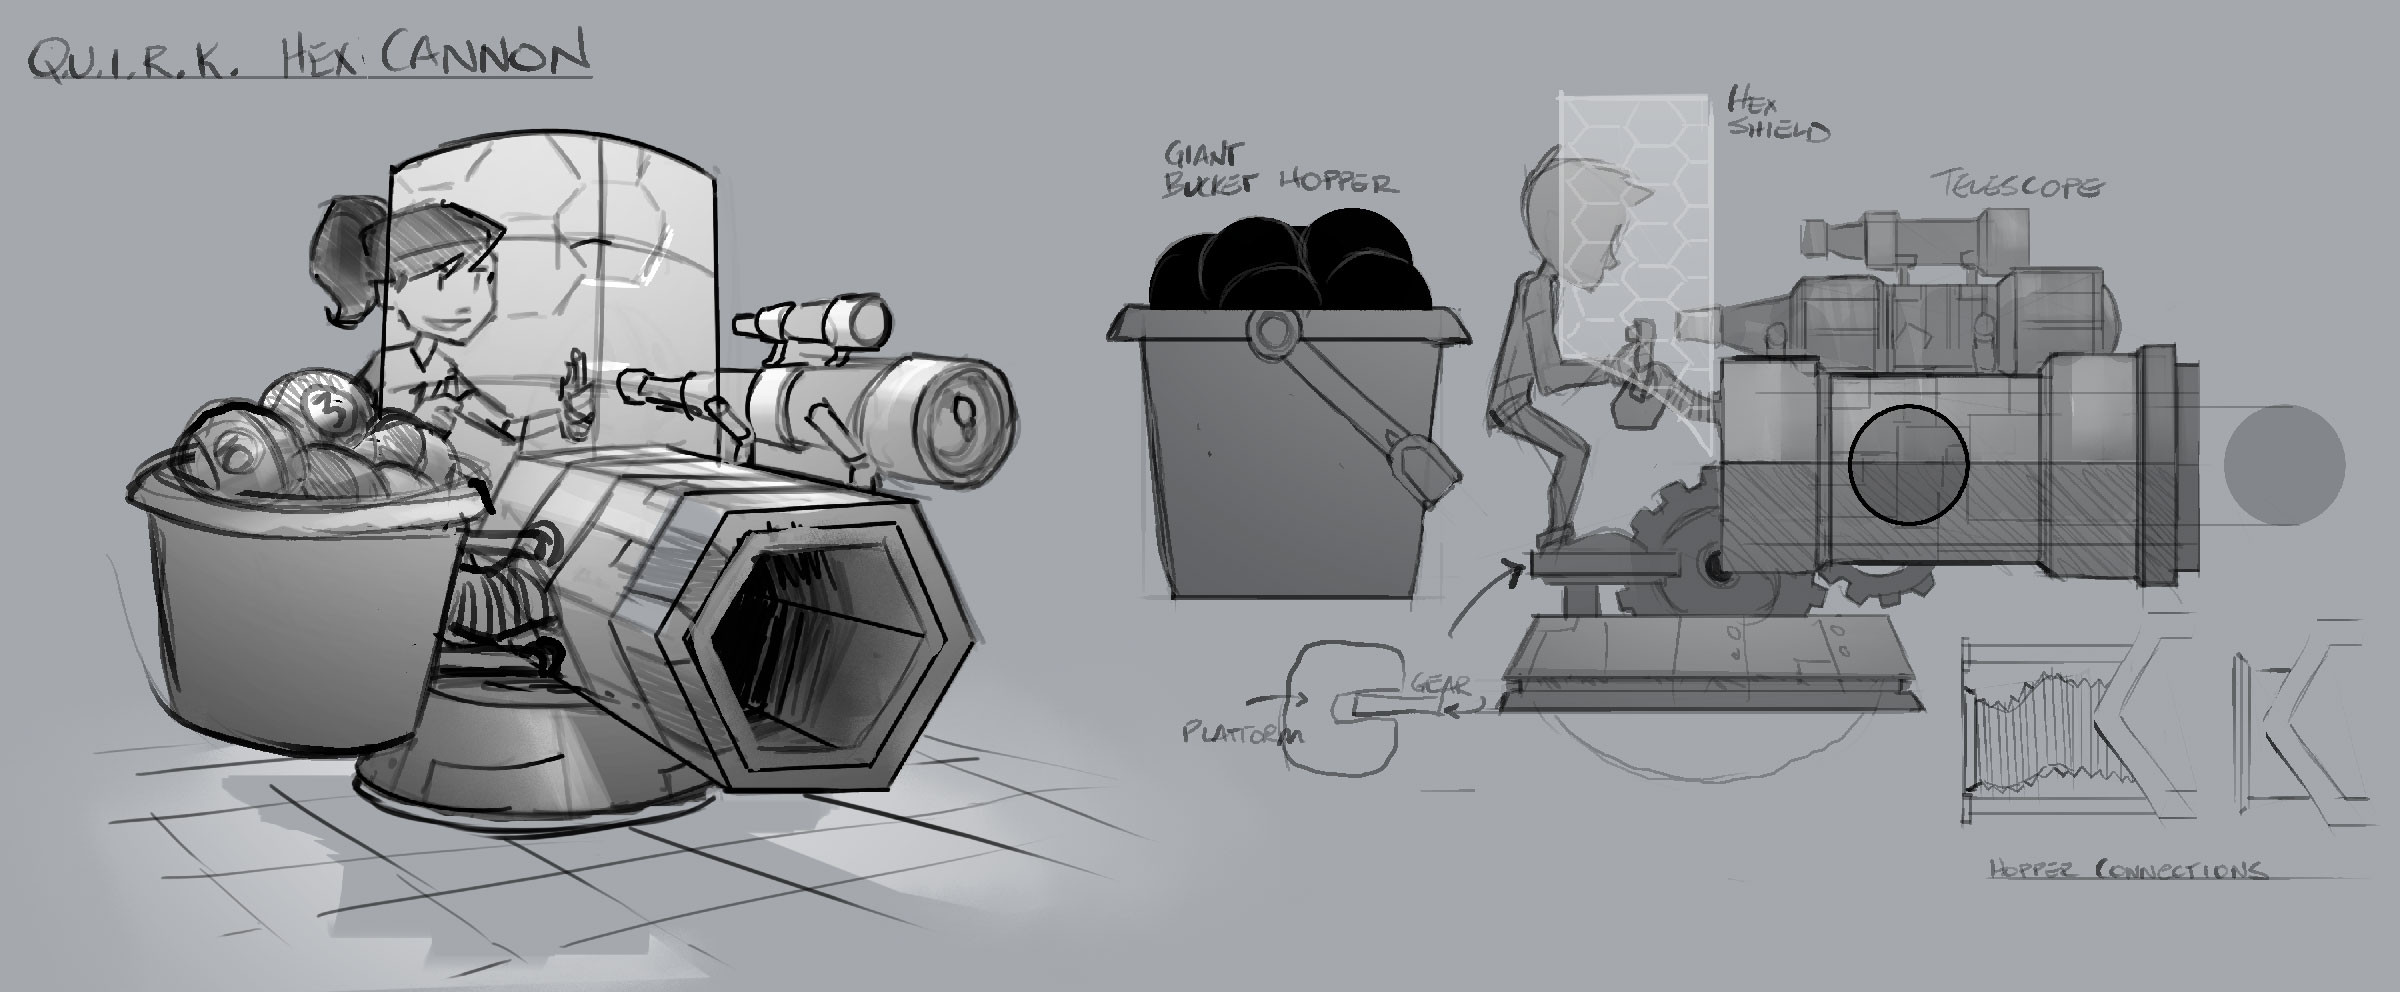 Hex Cannon Turret - Weapon/Prop Concept